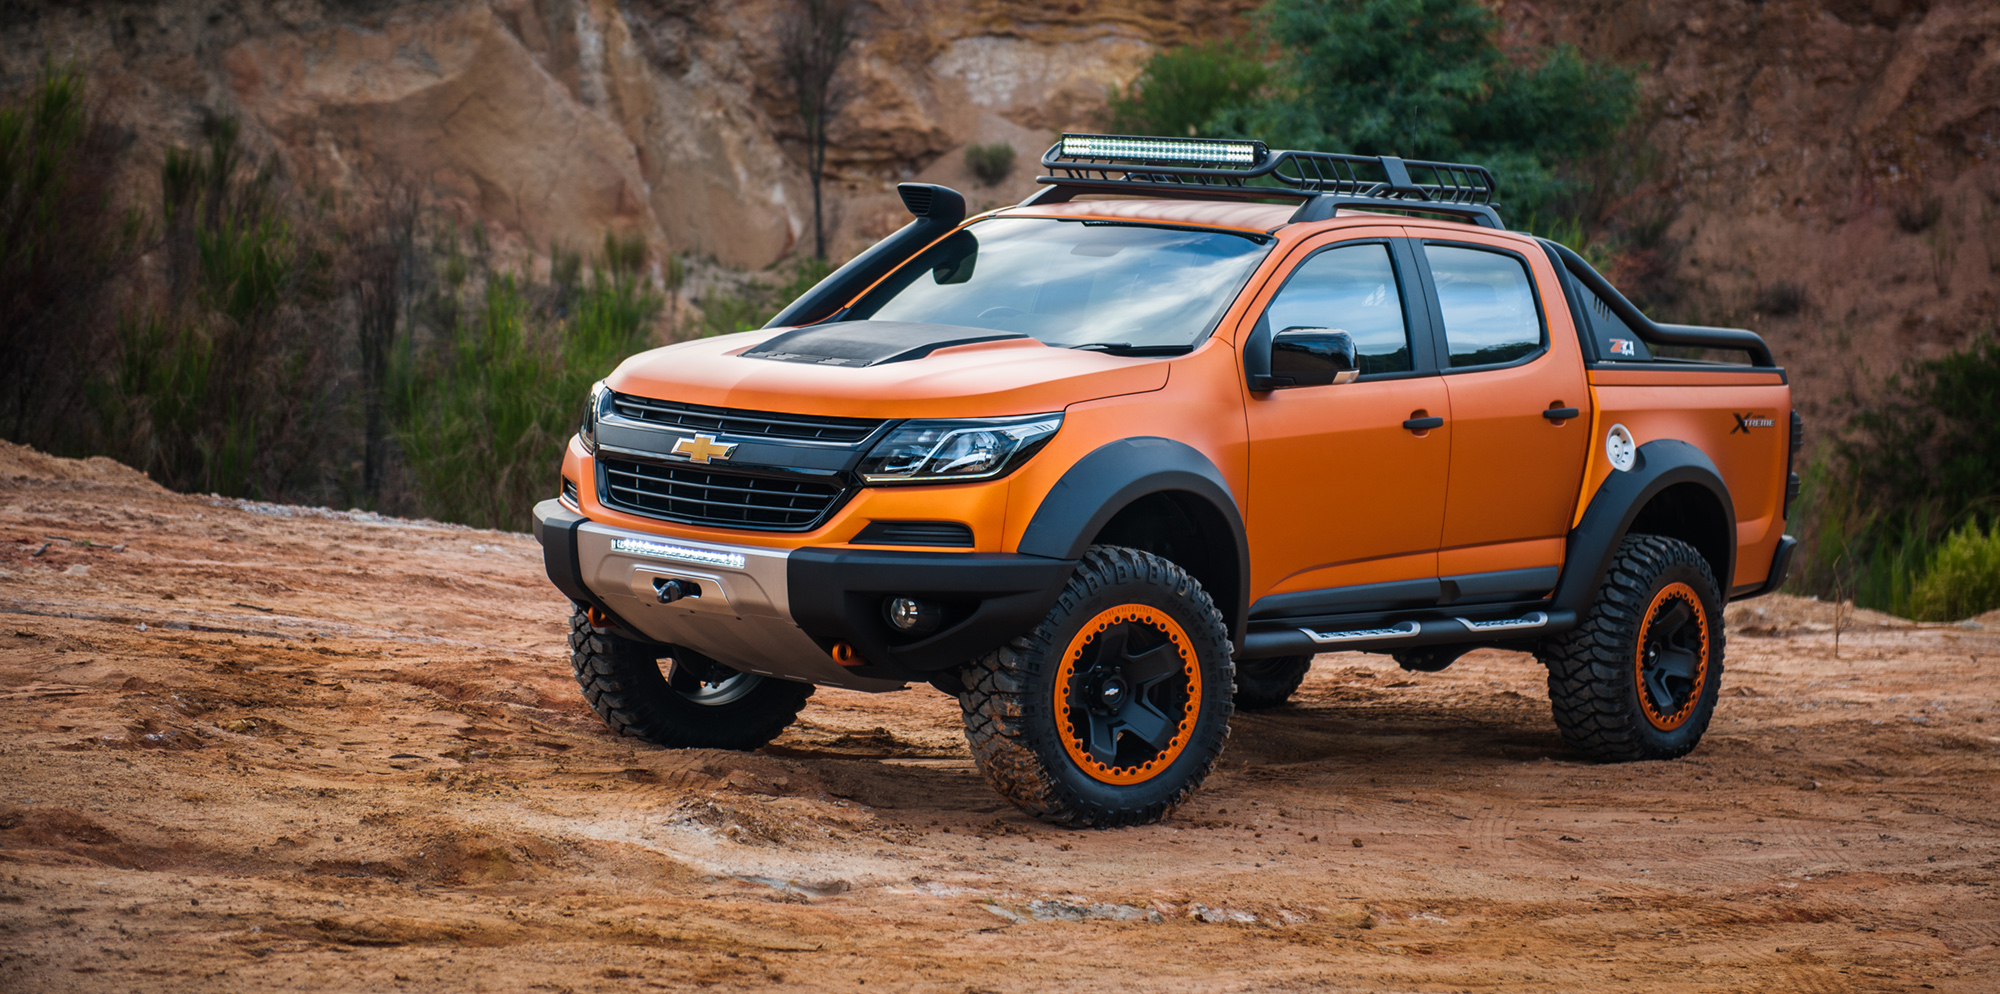 2017 holden colorado facelift draws near bangkok show cars point to new look photos caradvice. Black Bedroom Furniture Sets. Home Design Ideas